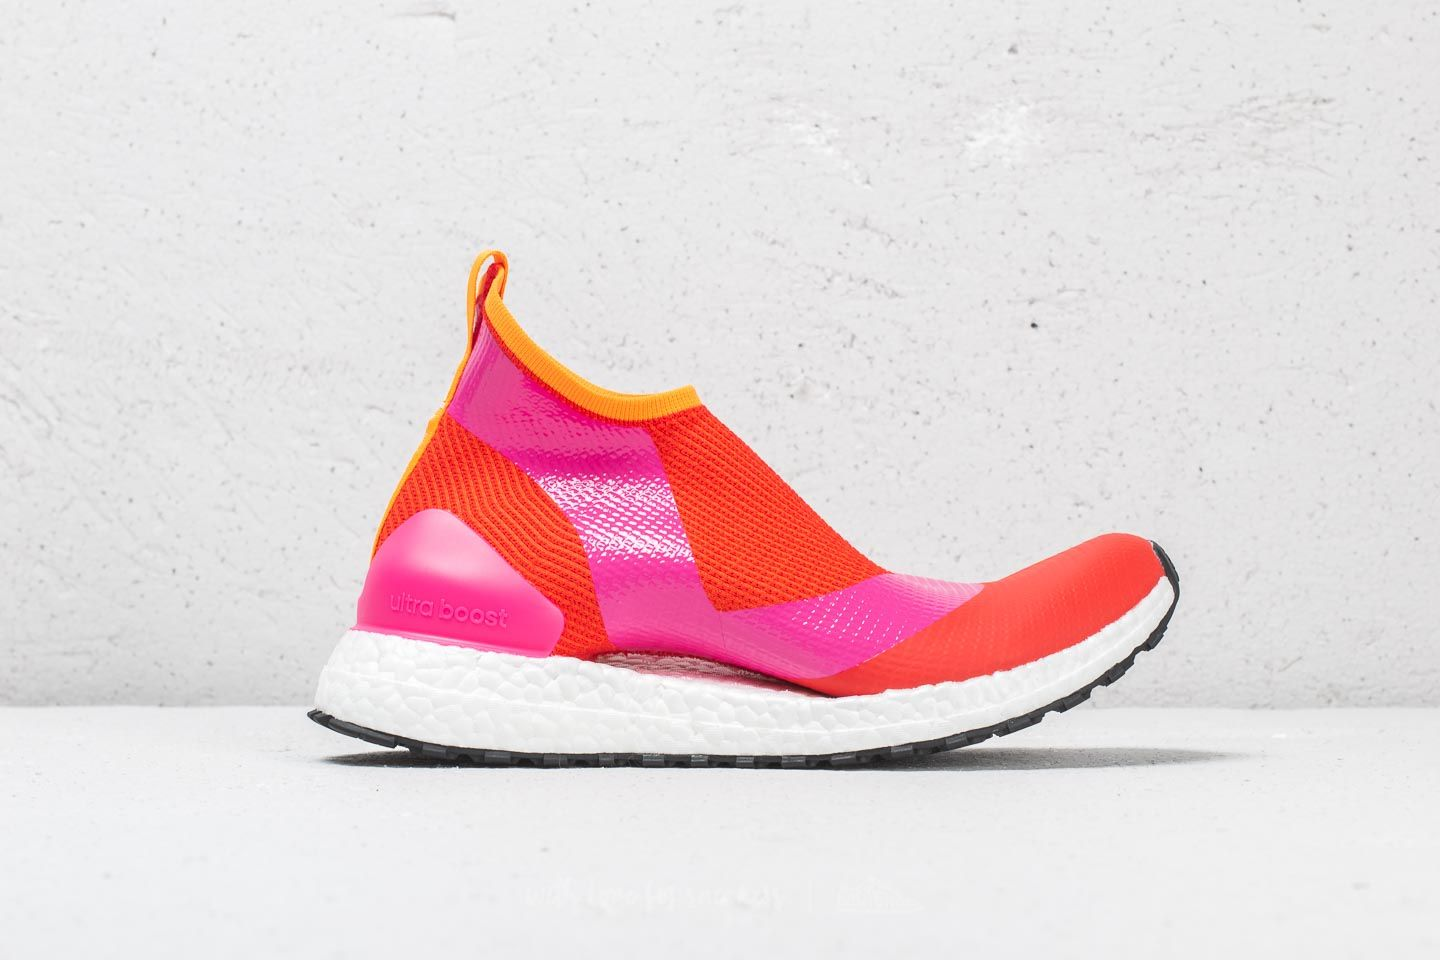 94918663d14 adidas x Stella McCartney Ultraboost X All Terrain Energy  Shock Pink  Core  Red at